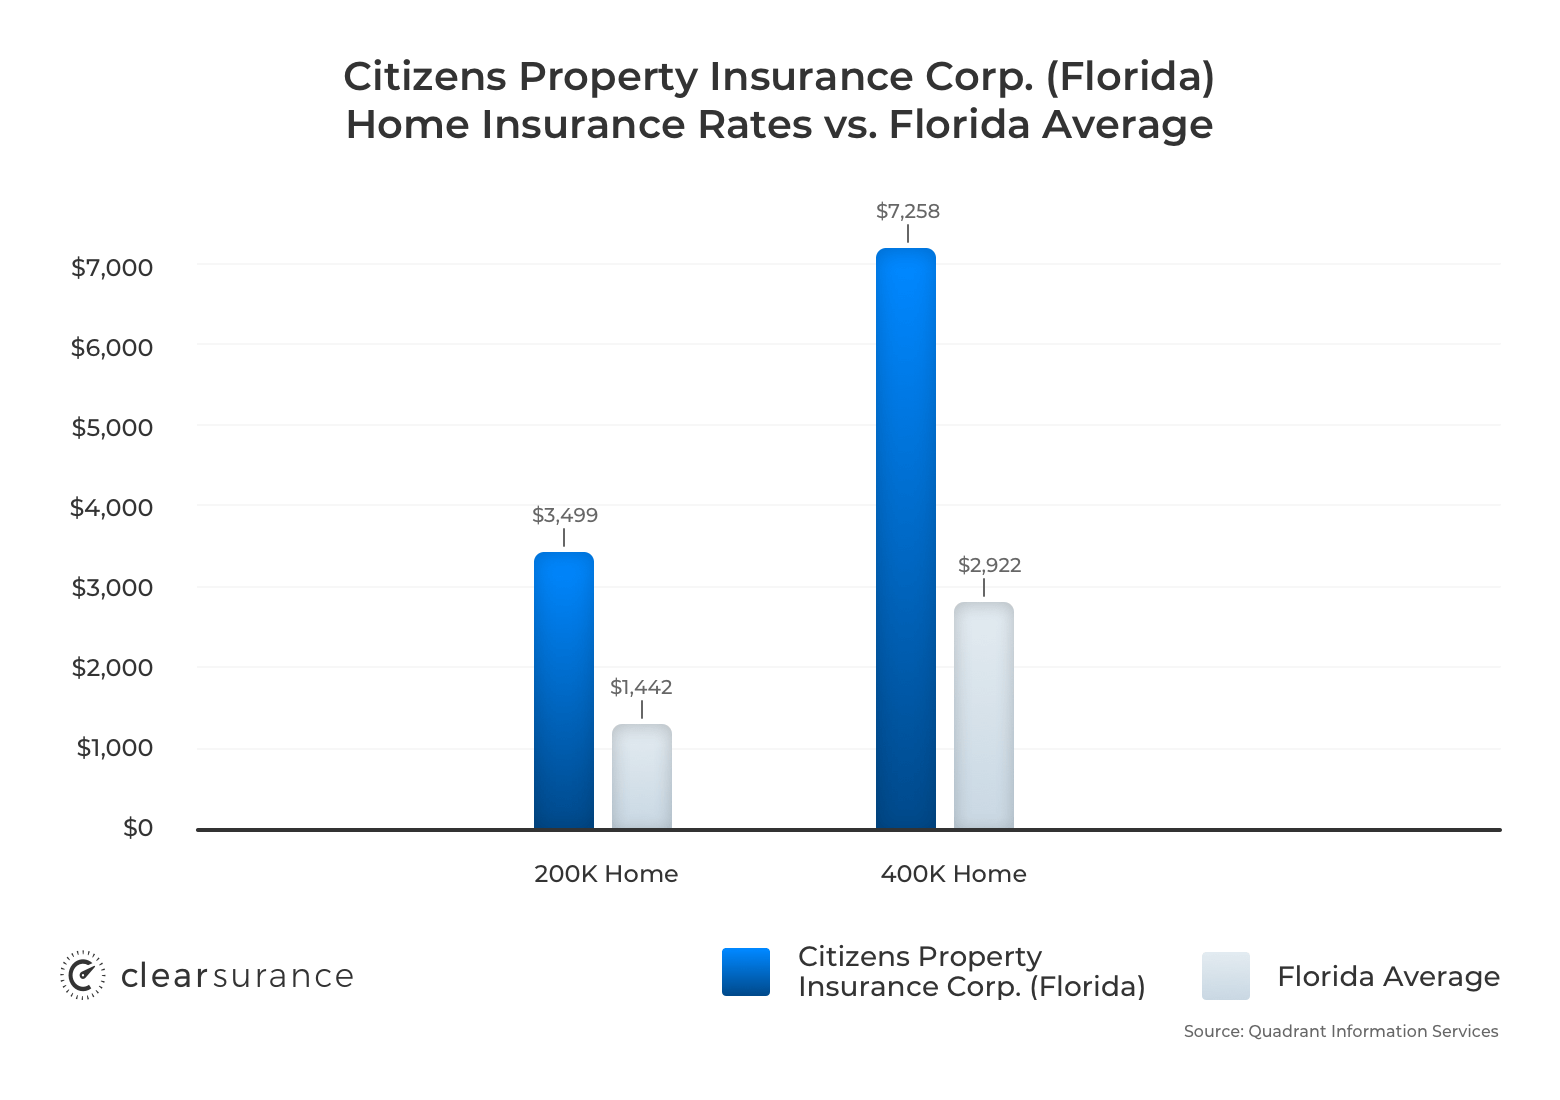 Citizens Property Insurance Corporation home insurance rates